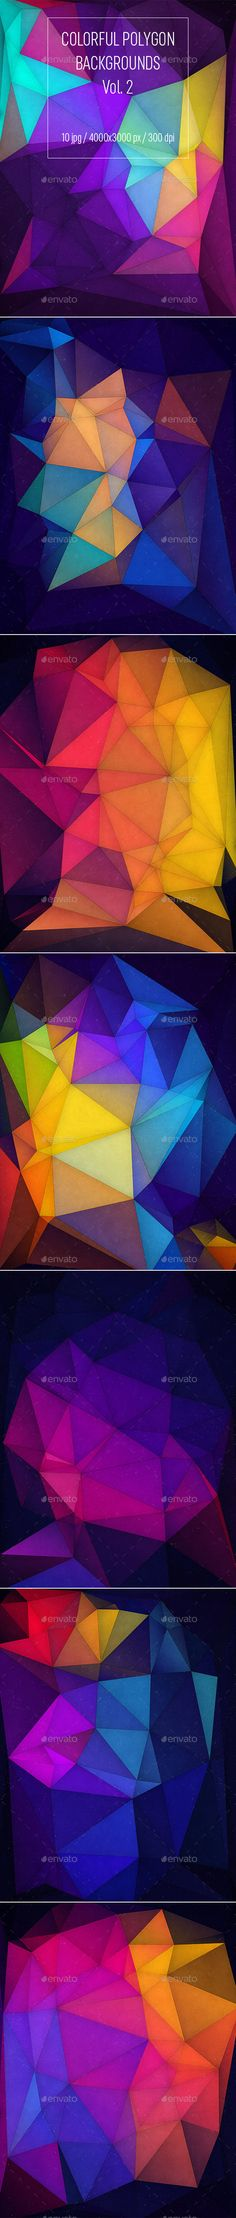 Colorful Polygon Backgrounds Vol.2 by groovydes This pack includes 10 colorful polygon backgrounds in JPG. Suitable for printing, web design, banners, posters 鈥?20Pixel Dimensions